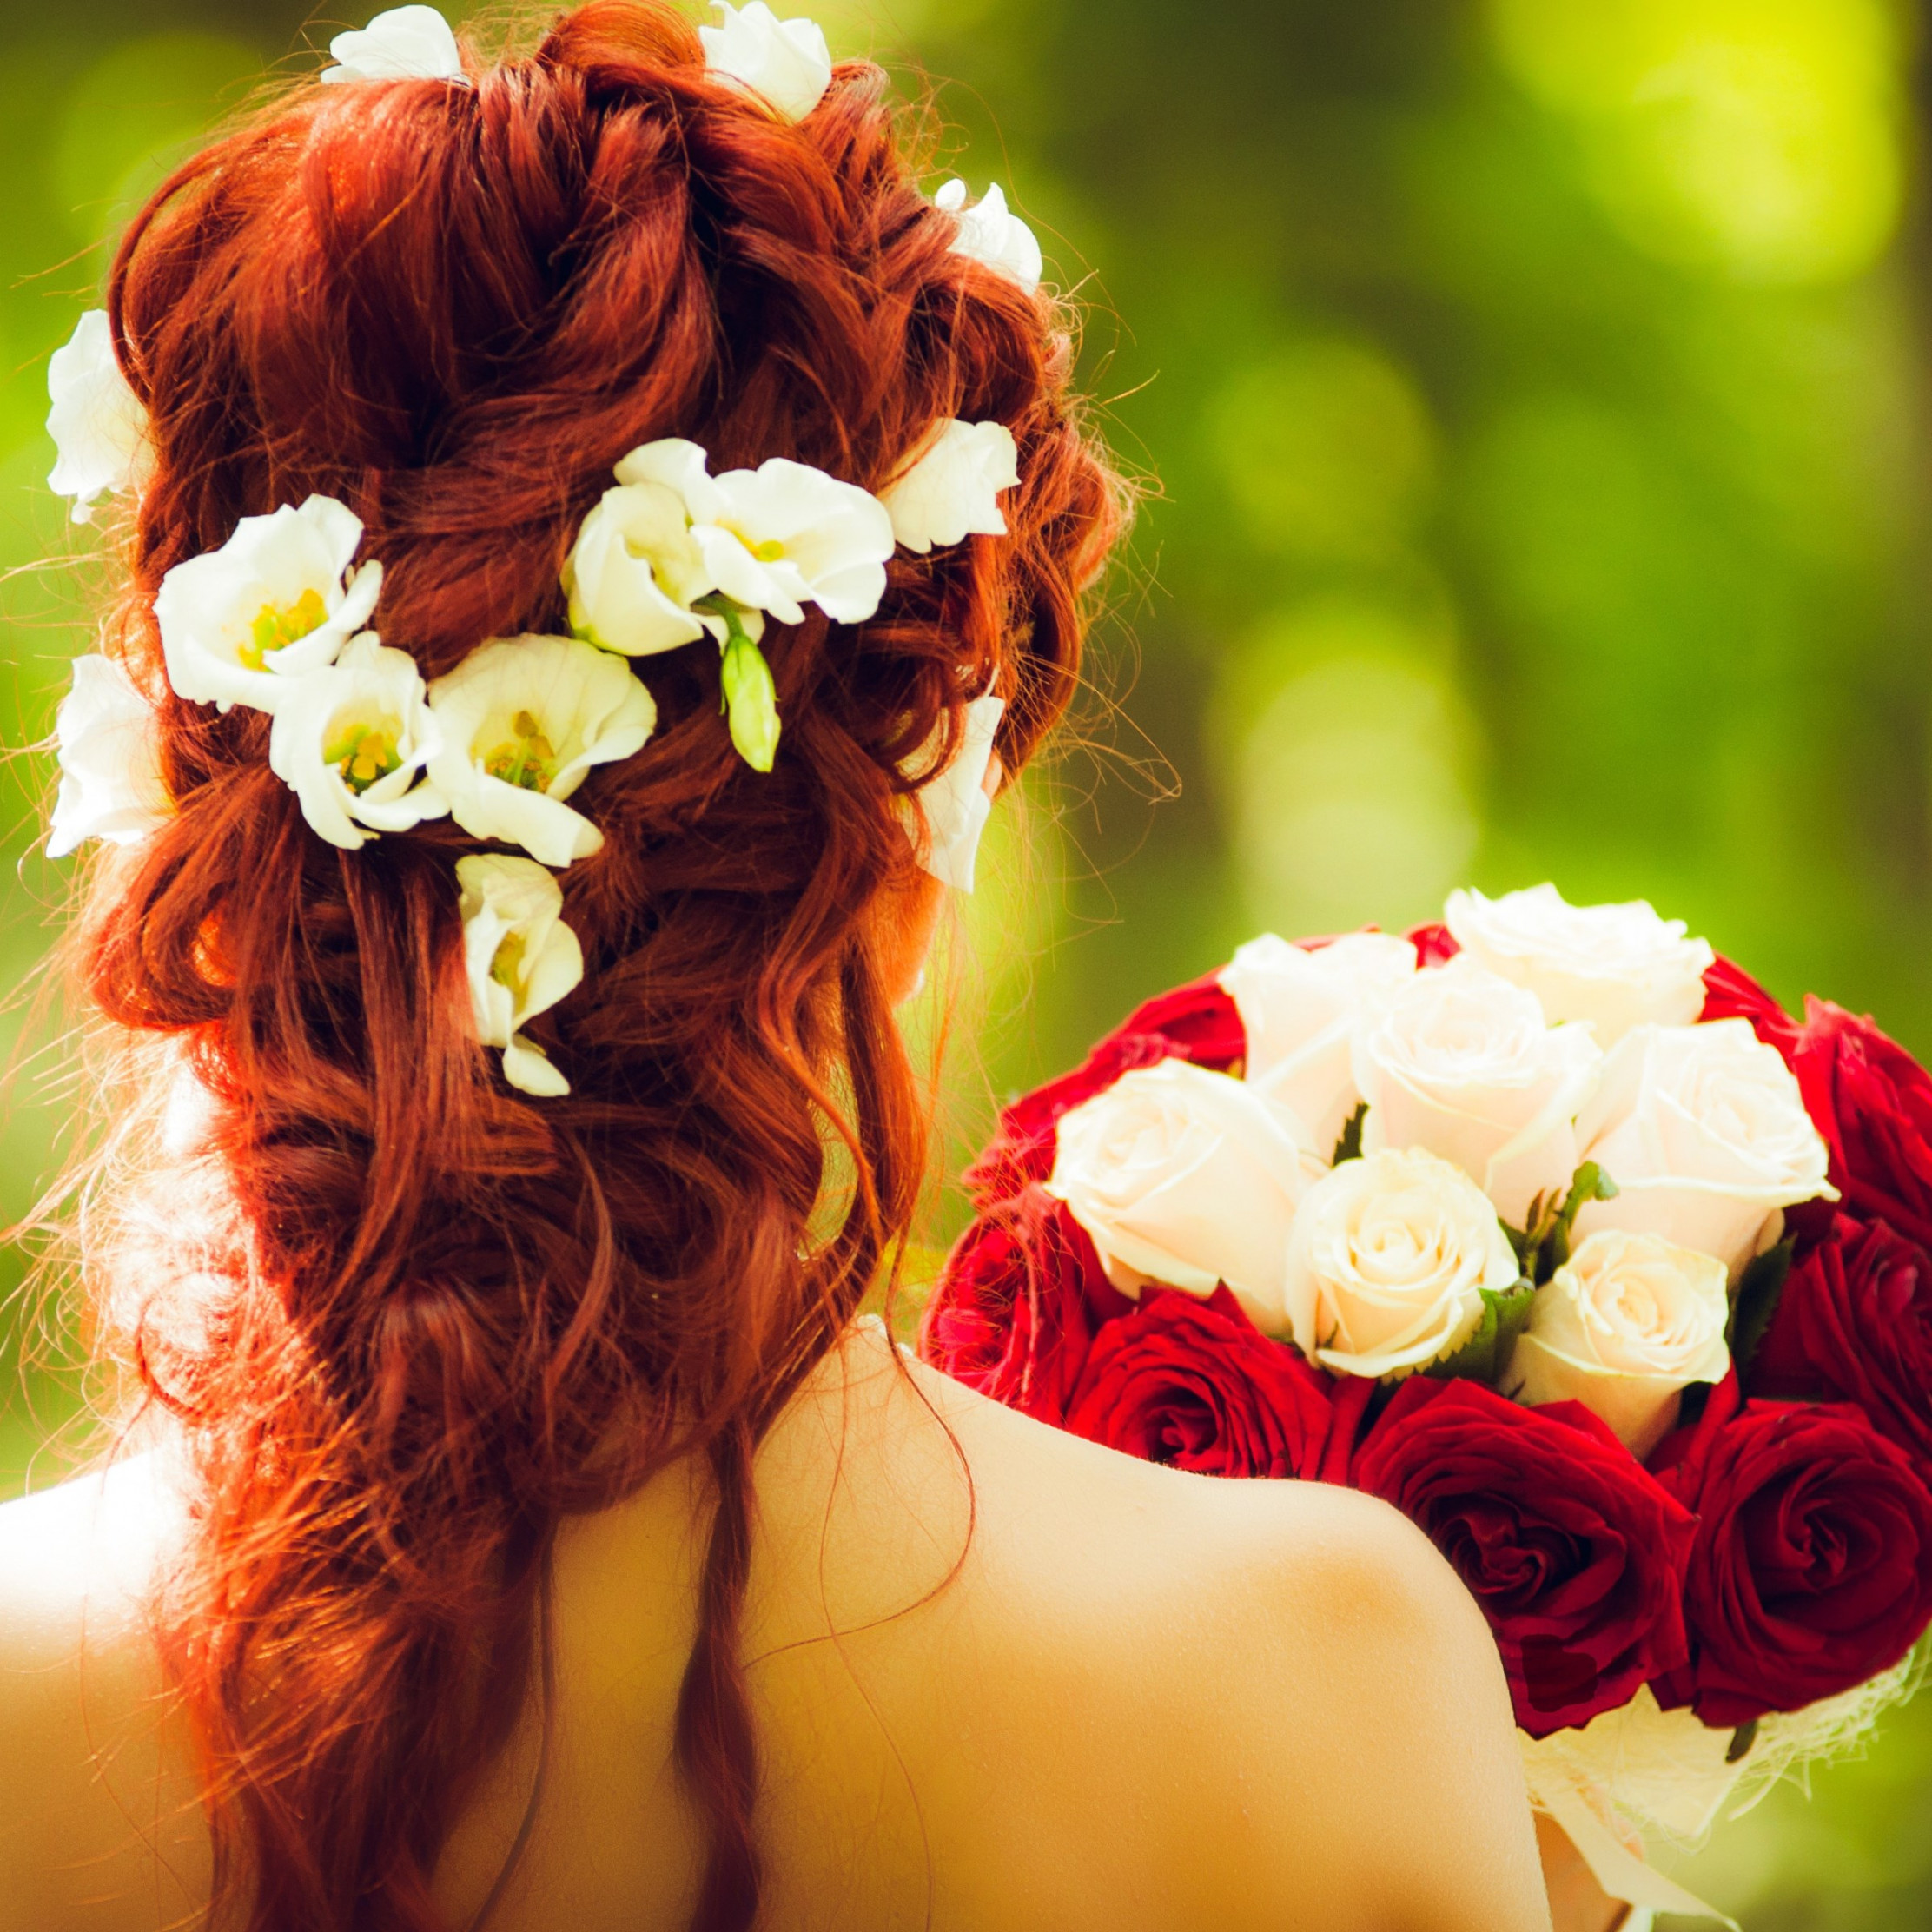 Bride and wedding flowers | 2224x2224 wallpaper